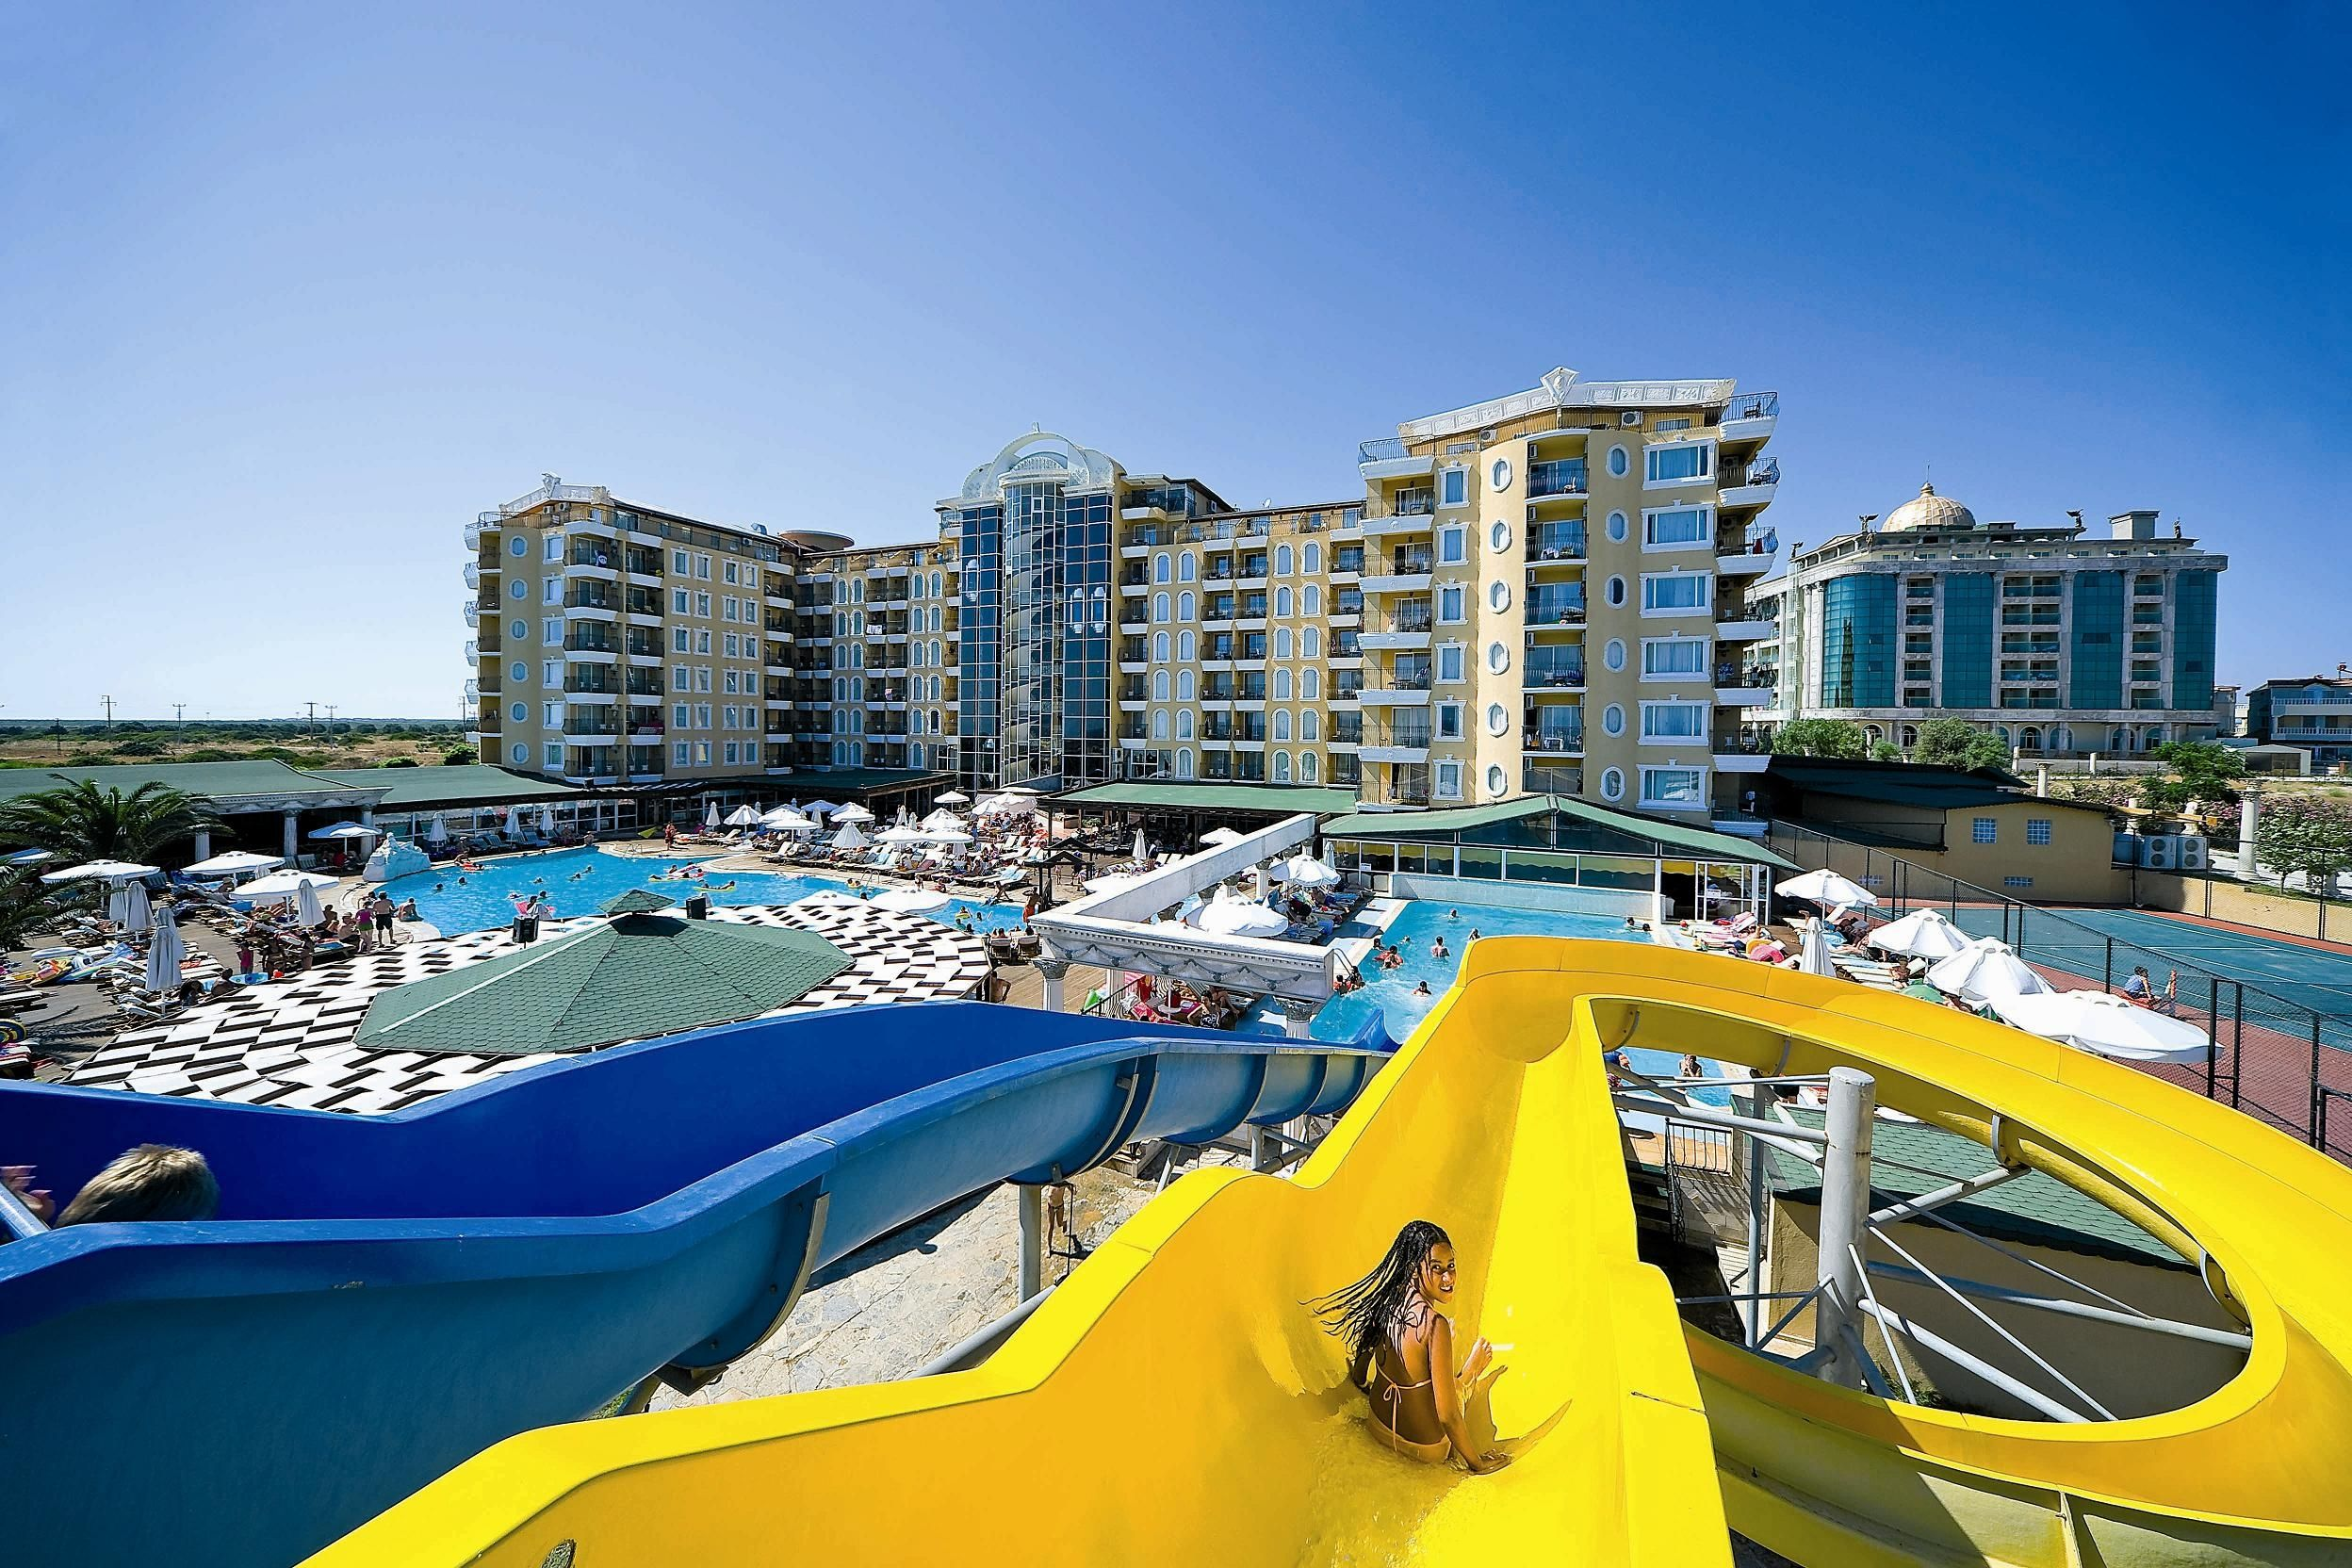 Beach Hotel Altinkum Didim Beach Resort Turkey places to stay